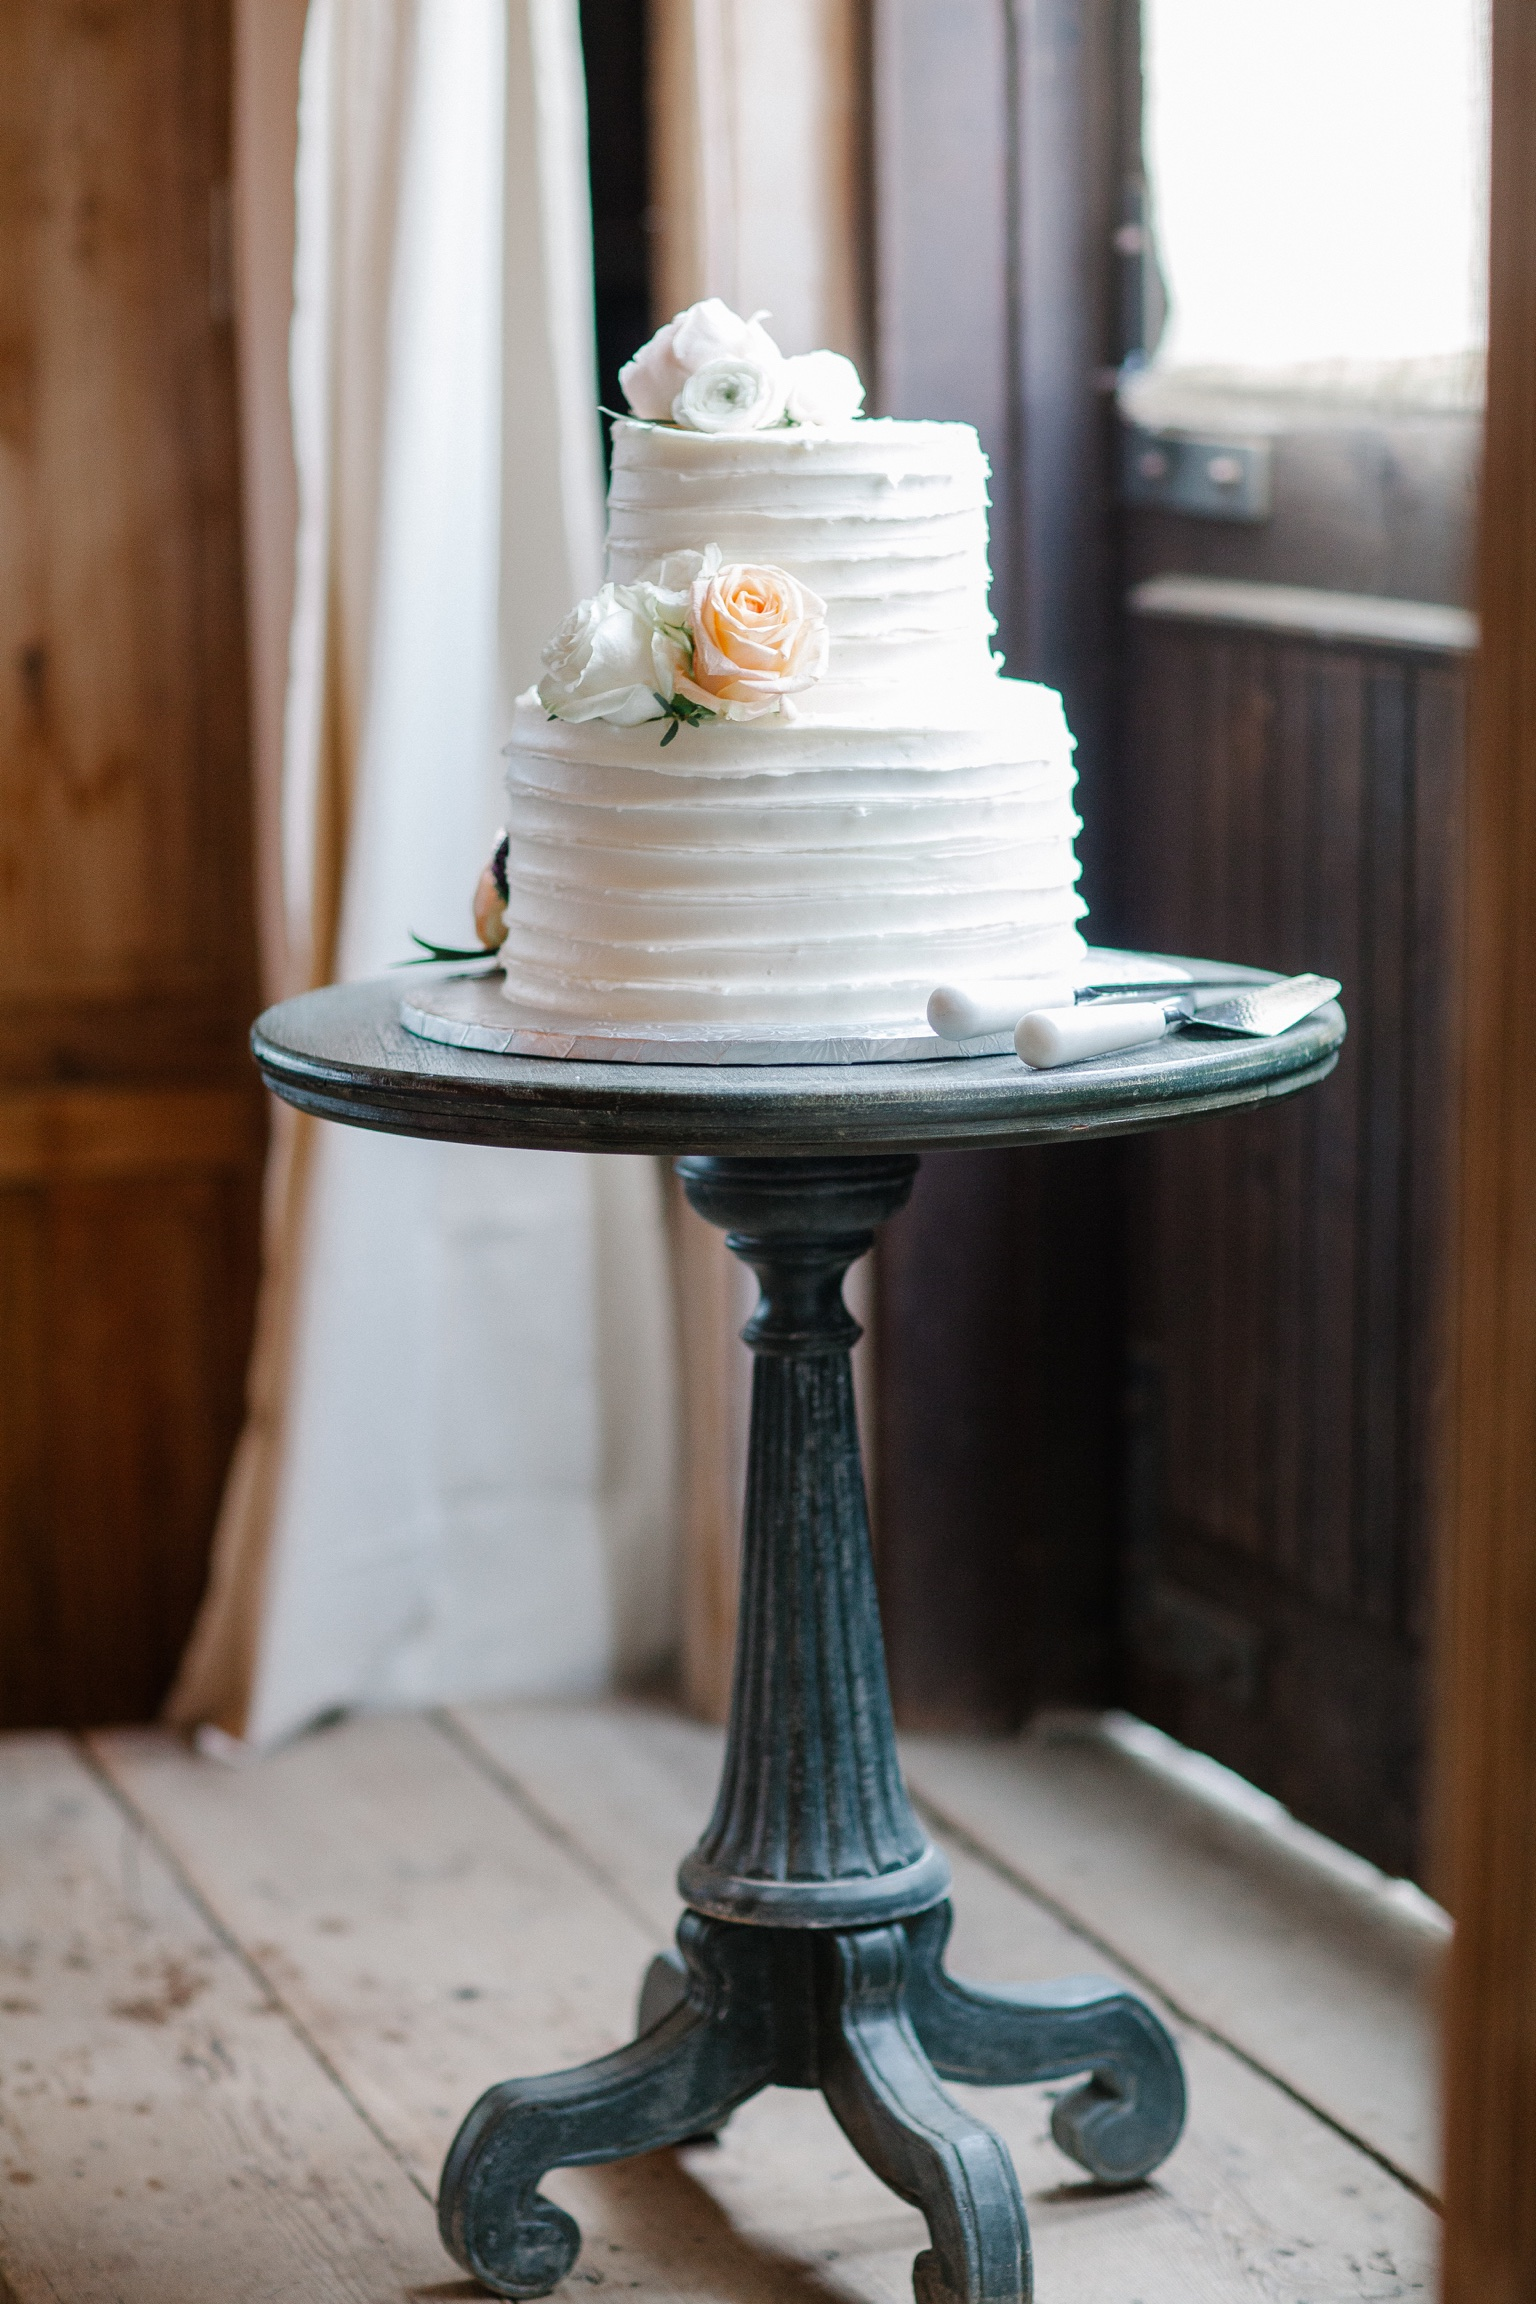 Simple cake from Cakes and Candies by MaryEllen for Terrain wedding